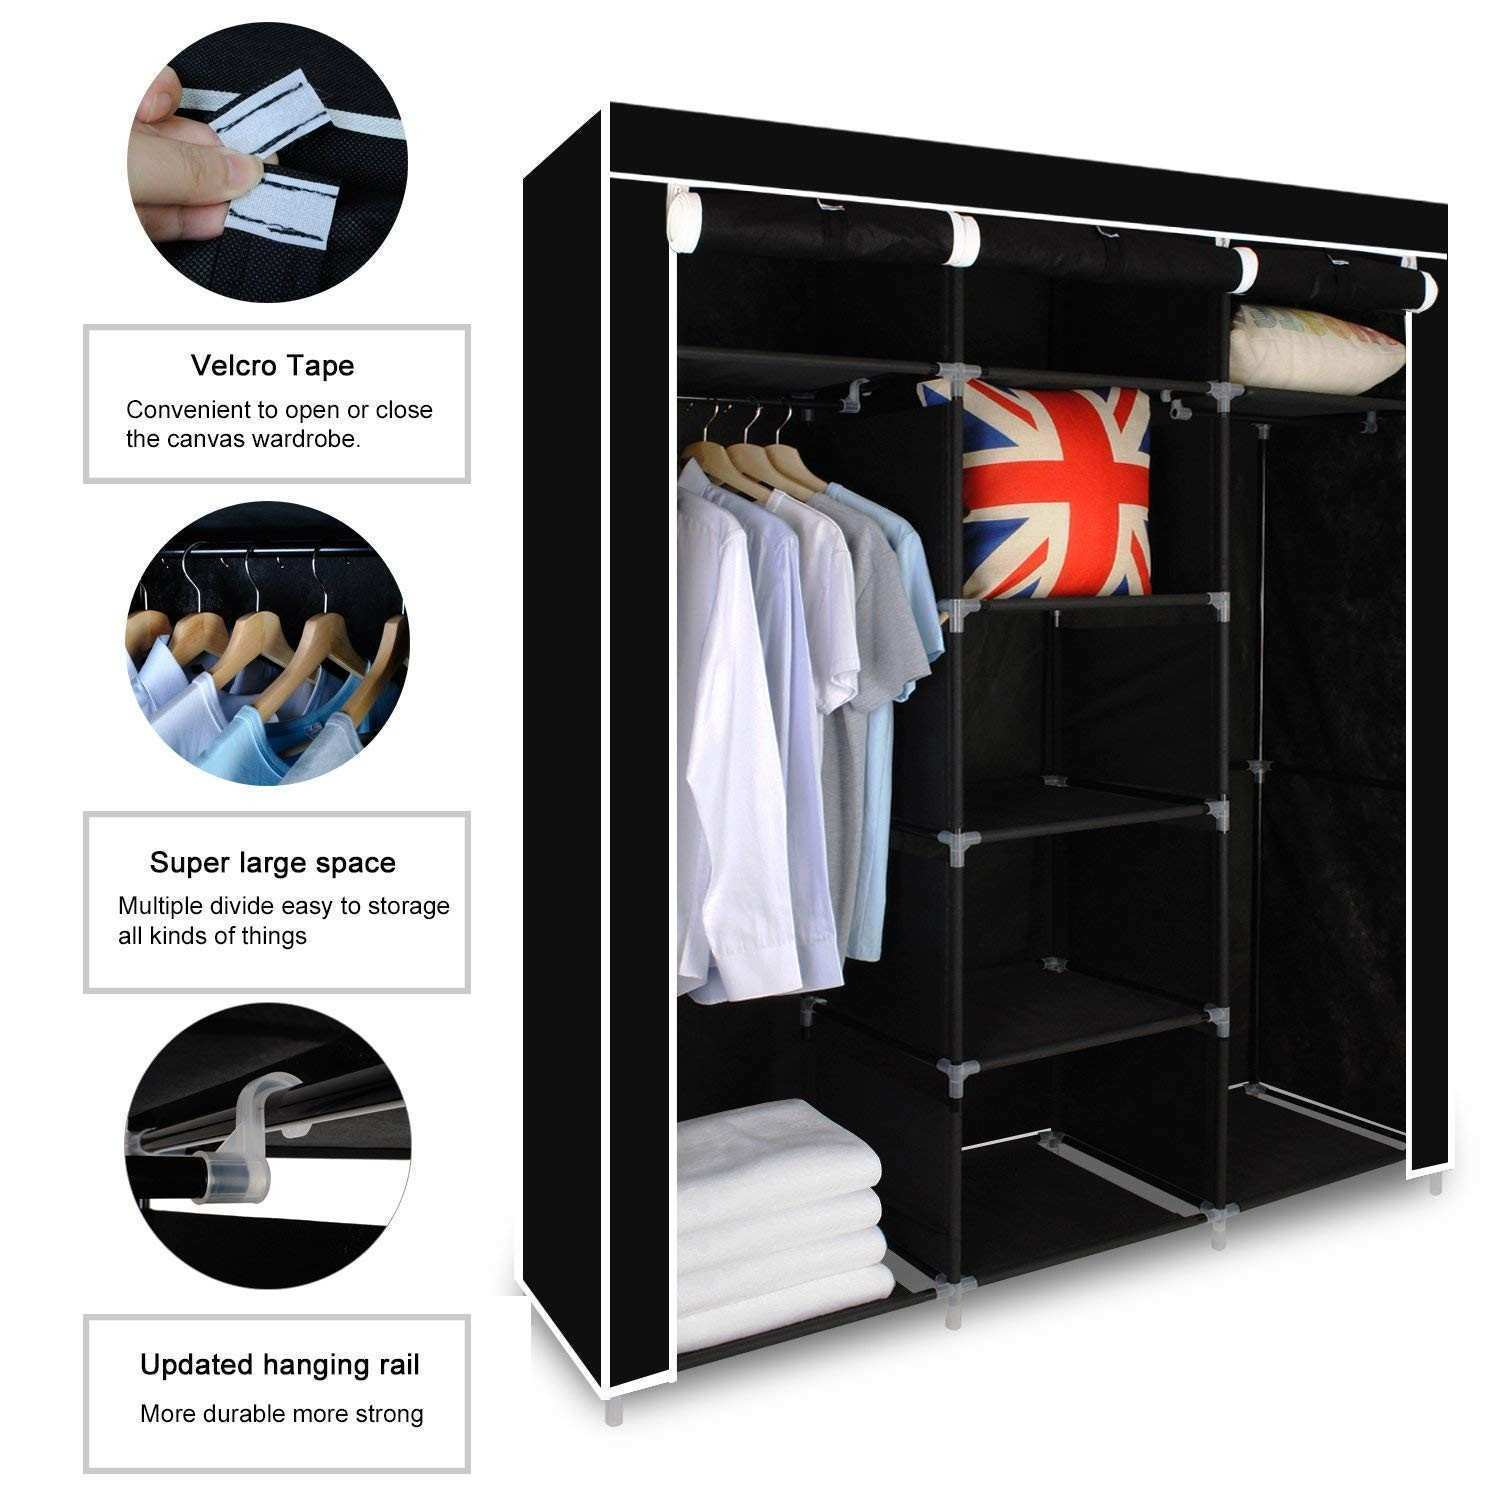 Laundry Storage solution Storage H&m Home Interior Collection